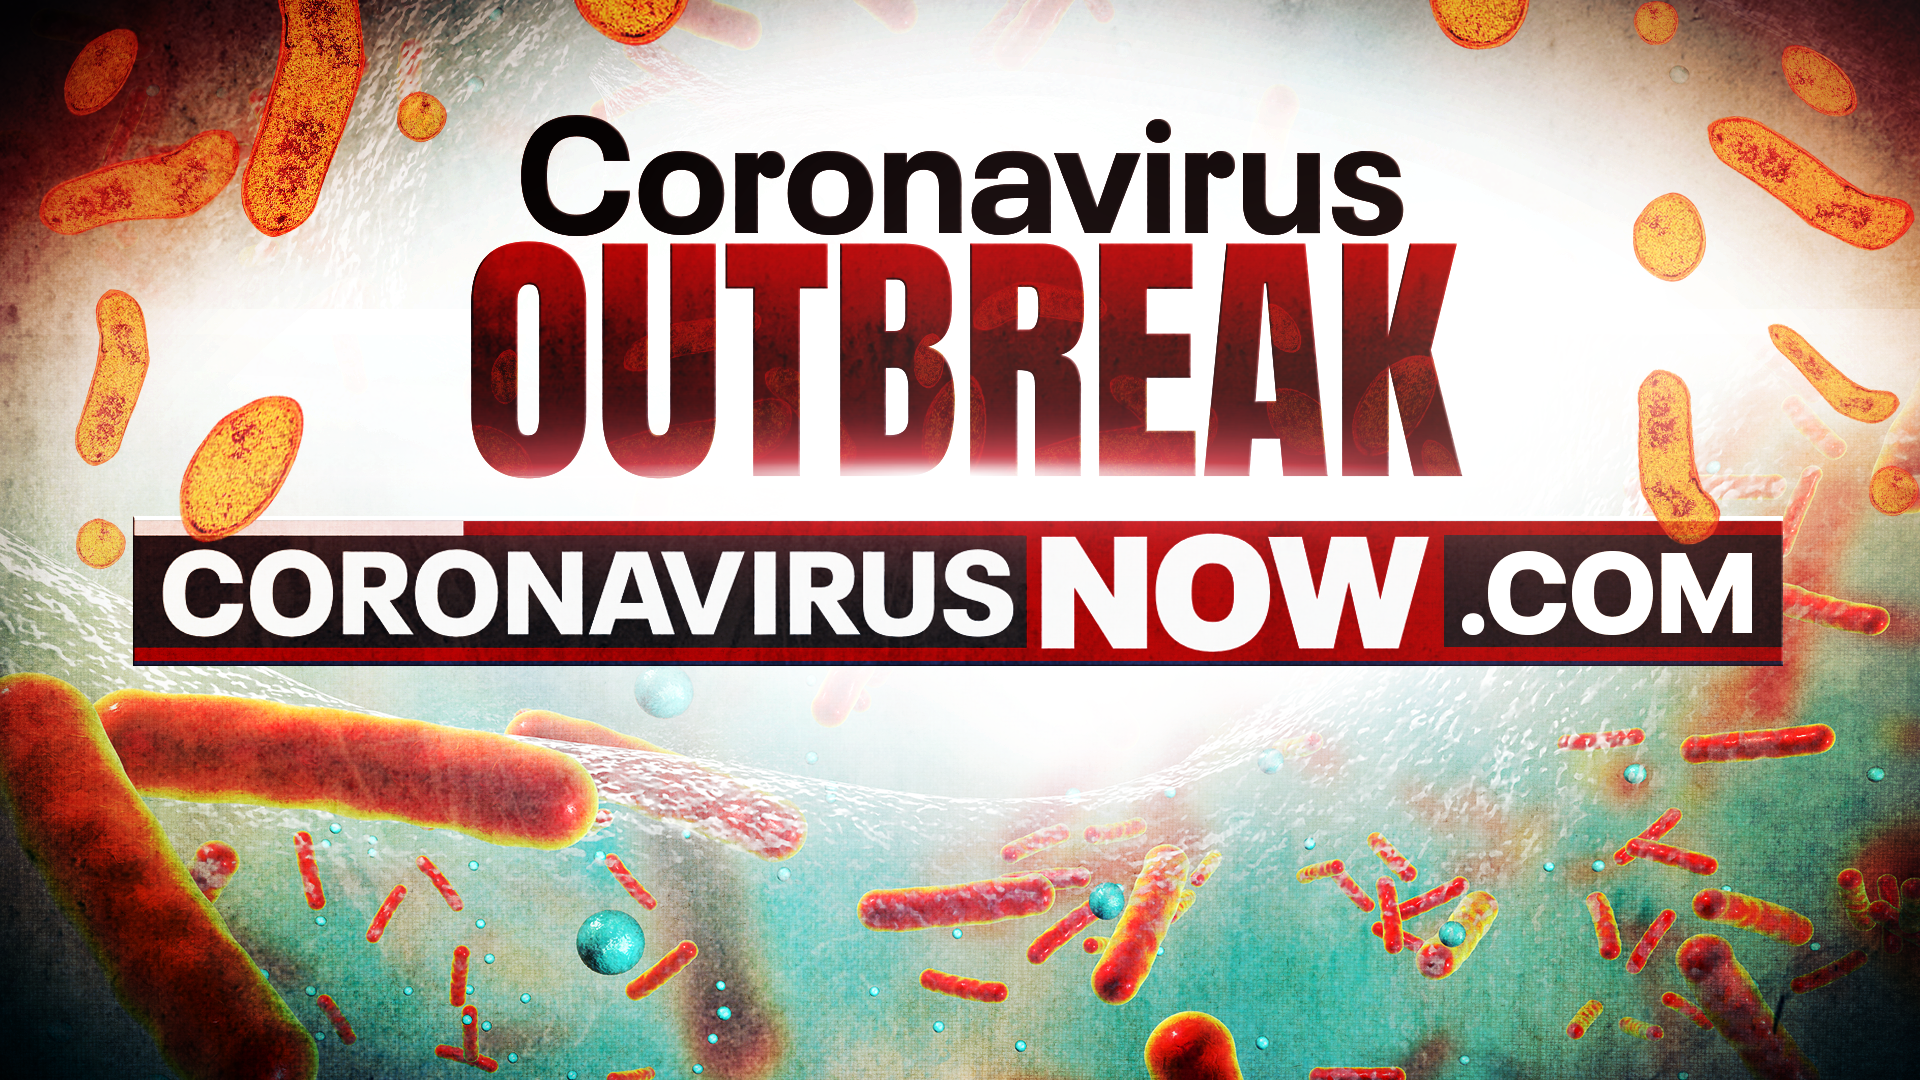 2nd presumptive positive COVID-19 coronavirus case reported in ...